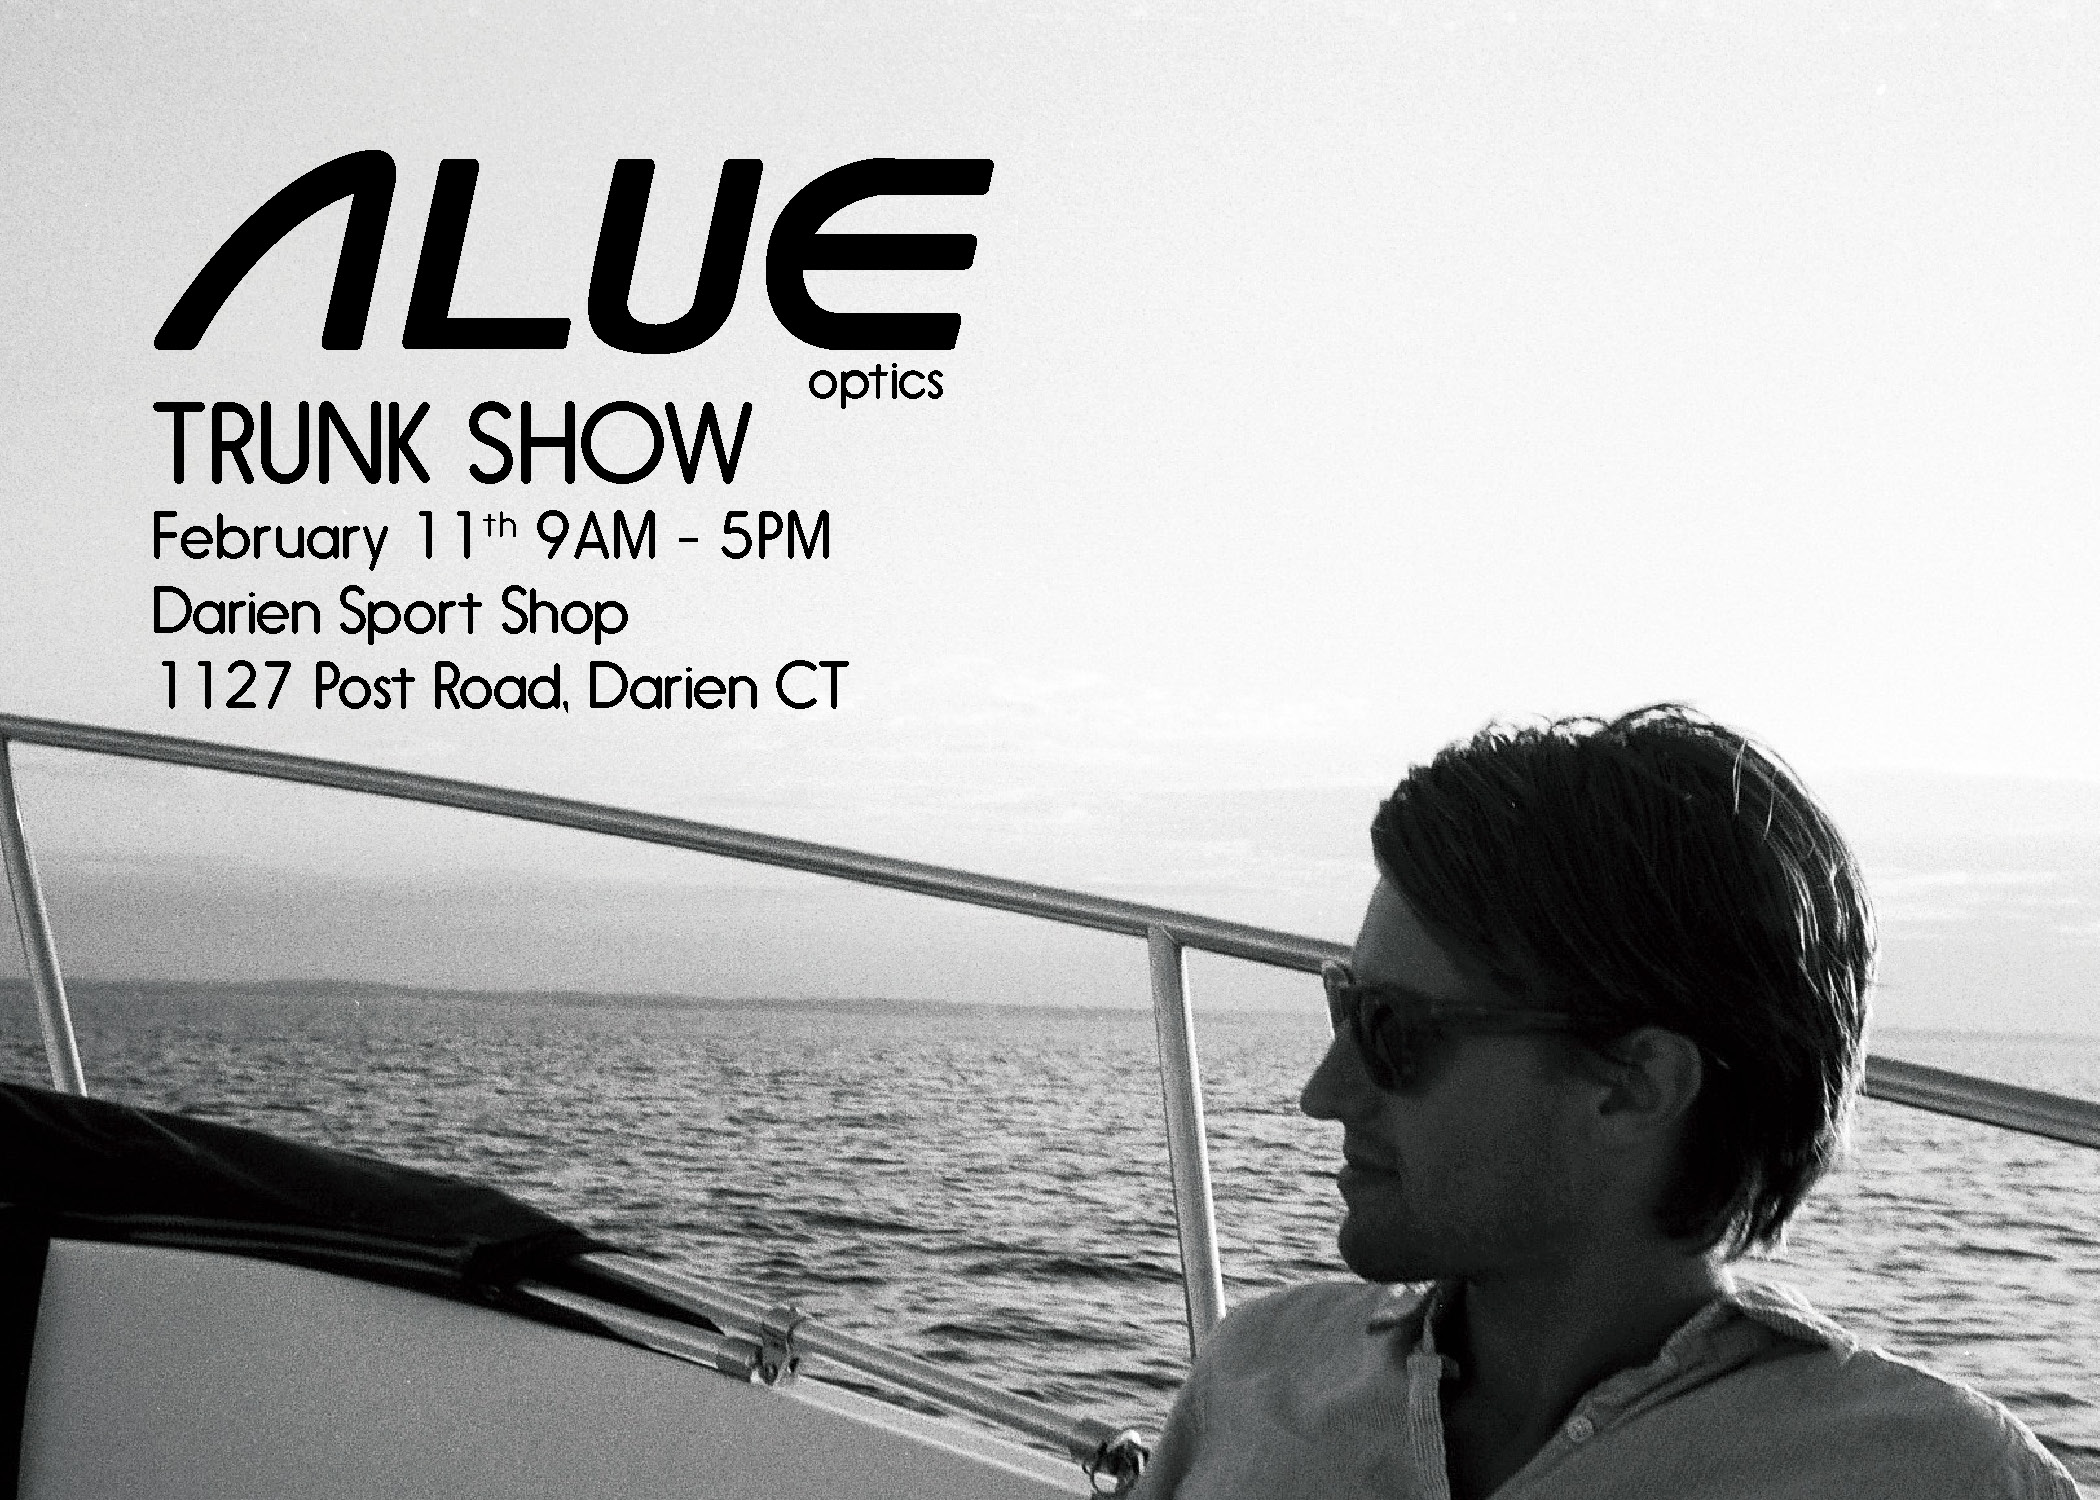 alue optics darien sport shop trunk show